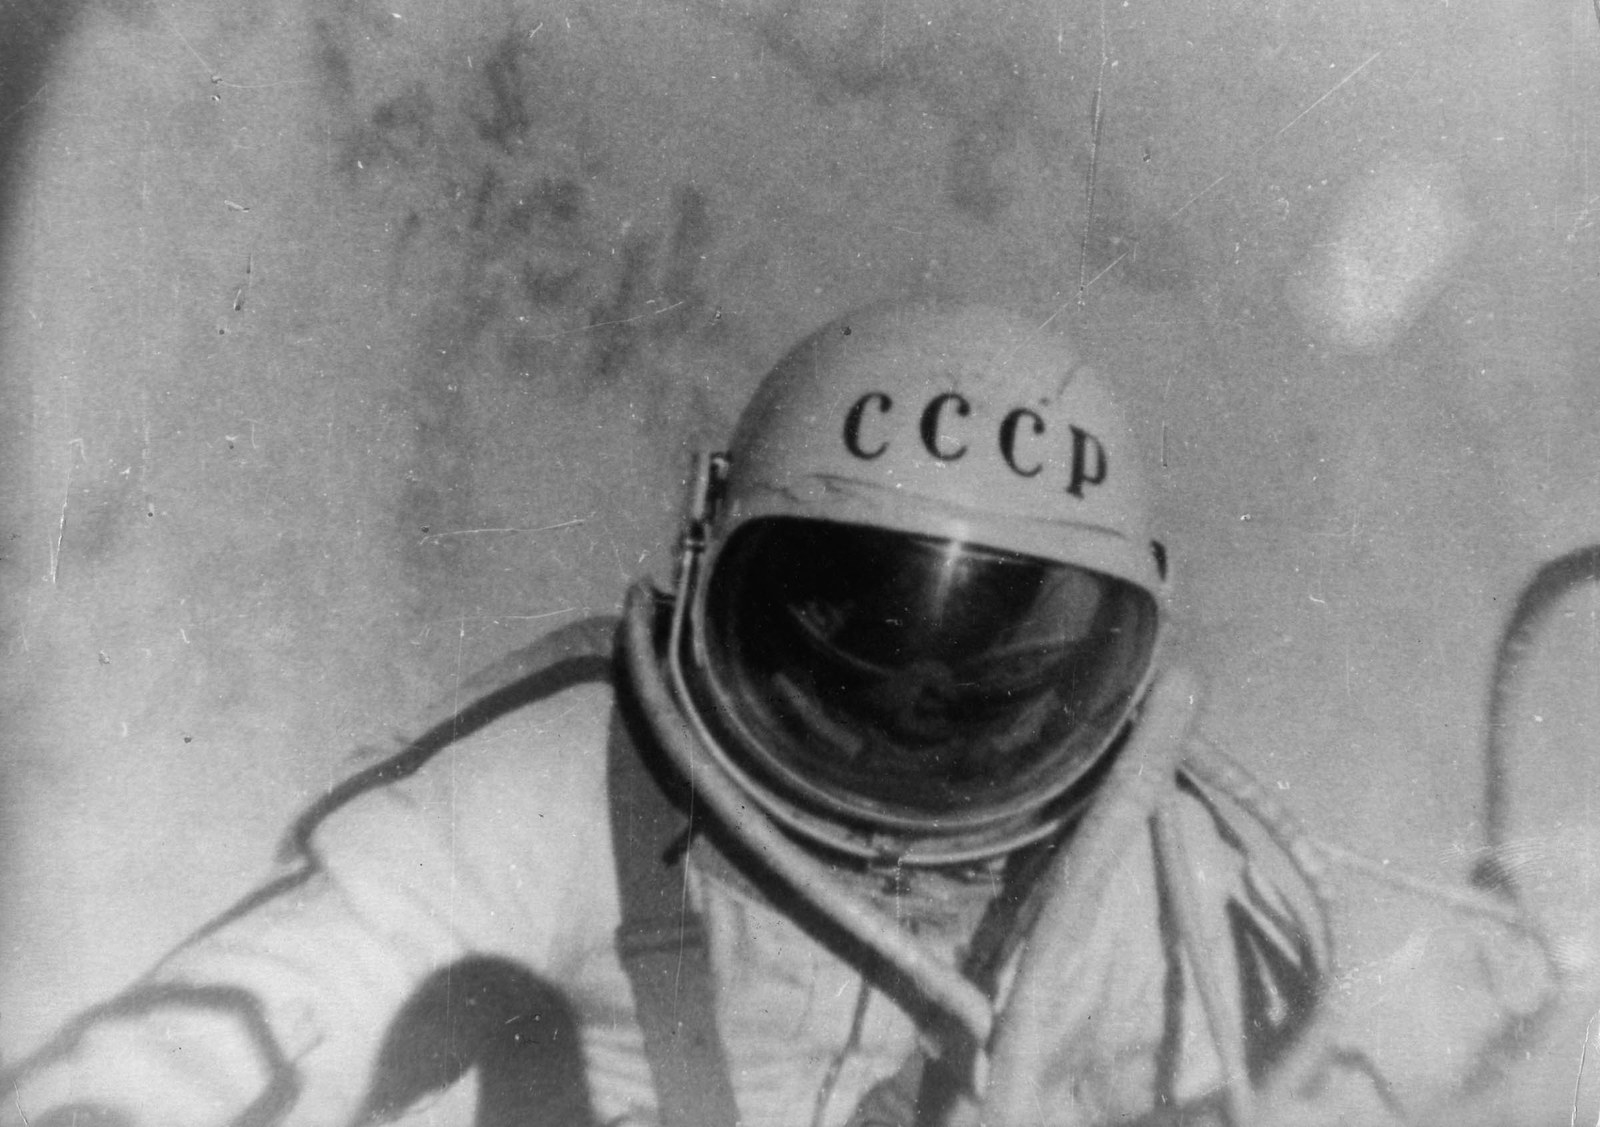 1965 A still from the documentary film The Man Walking In Space, which followed Russian astronaut Alexei Arkhipovich Leonov on his famous orbit in the spacecraft Voskhod 2. On March 18, 1965, Leonov left the spacecraft for 10 minutes to become the first man ever to walk in space.